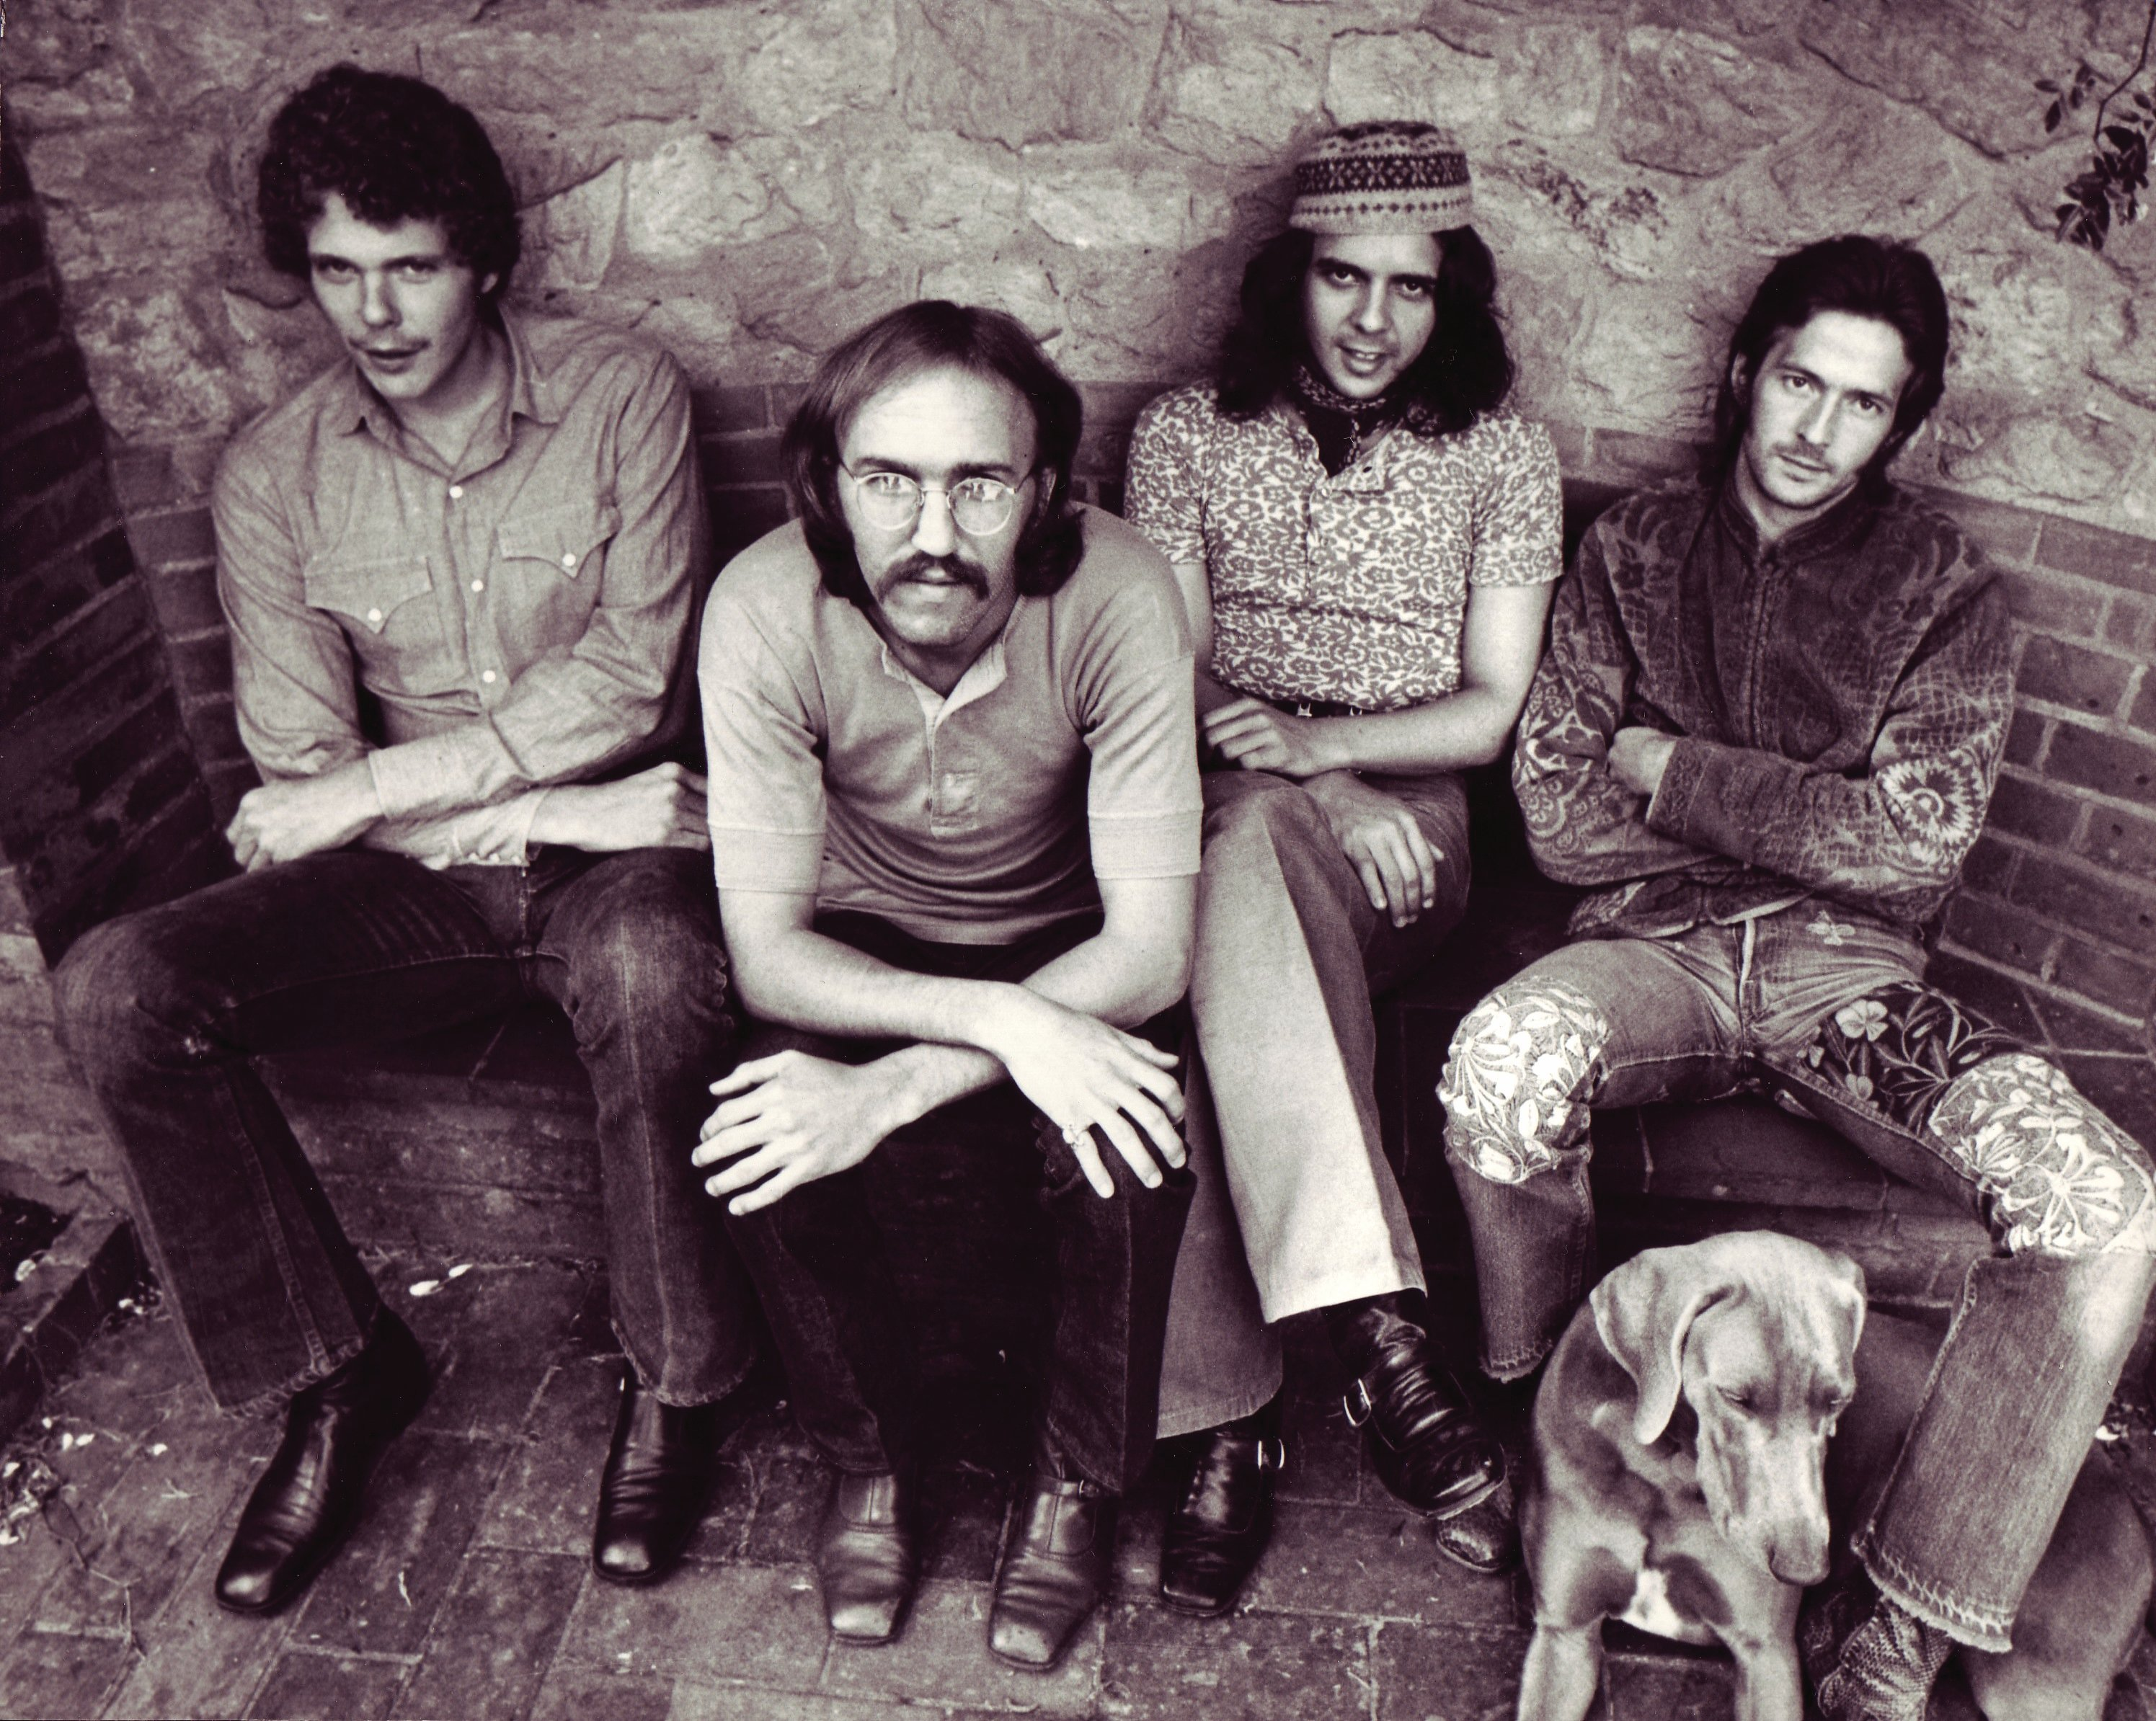 Sitting on Top of the World: Radle, Gordon, Whitlock, Clapton, and four-legged  friend take a break during the Layla sessions. Photo courtesy Polygram Press Archive.